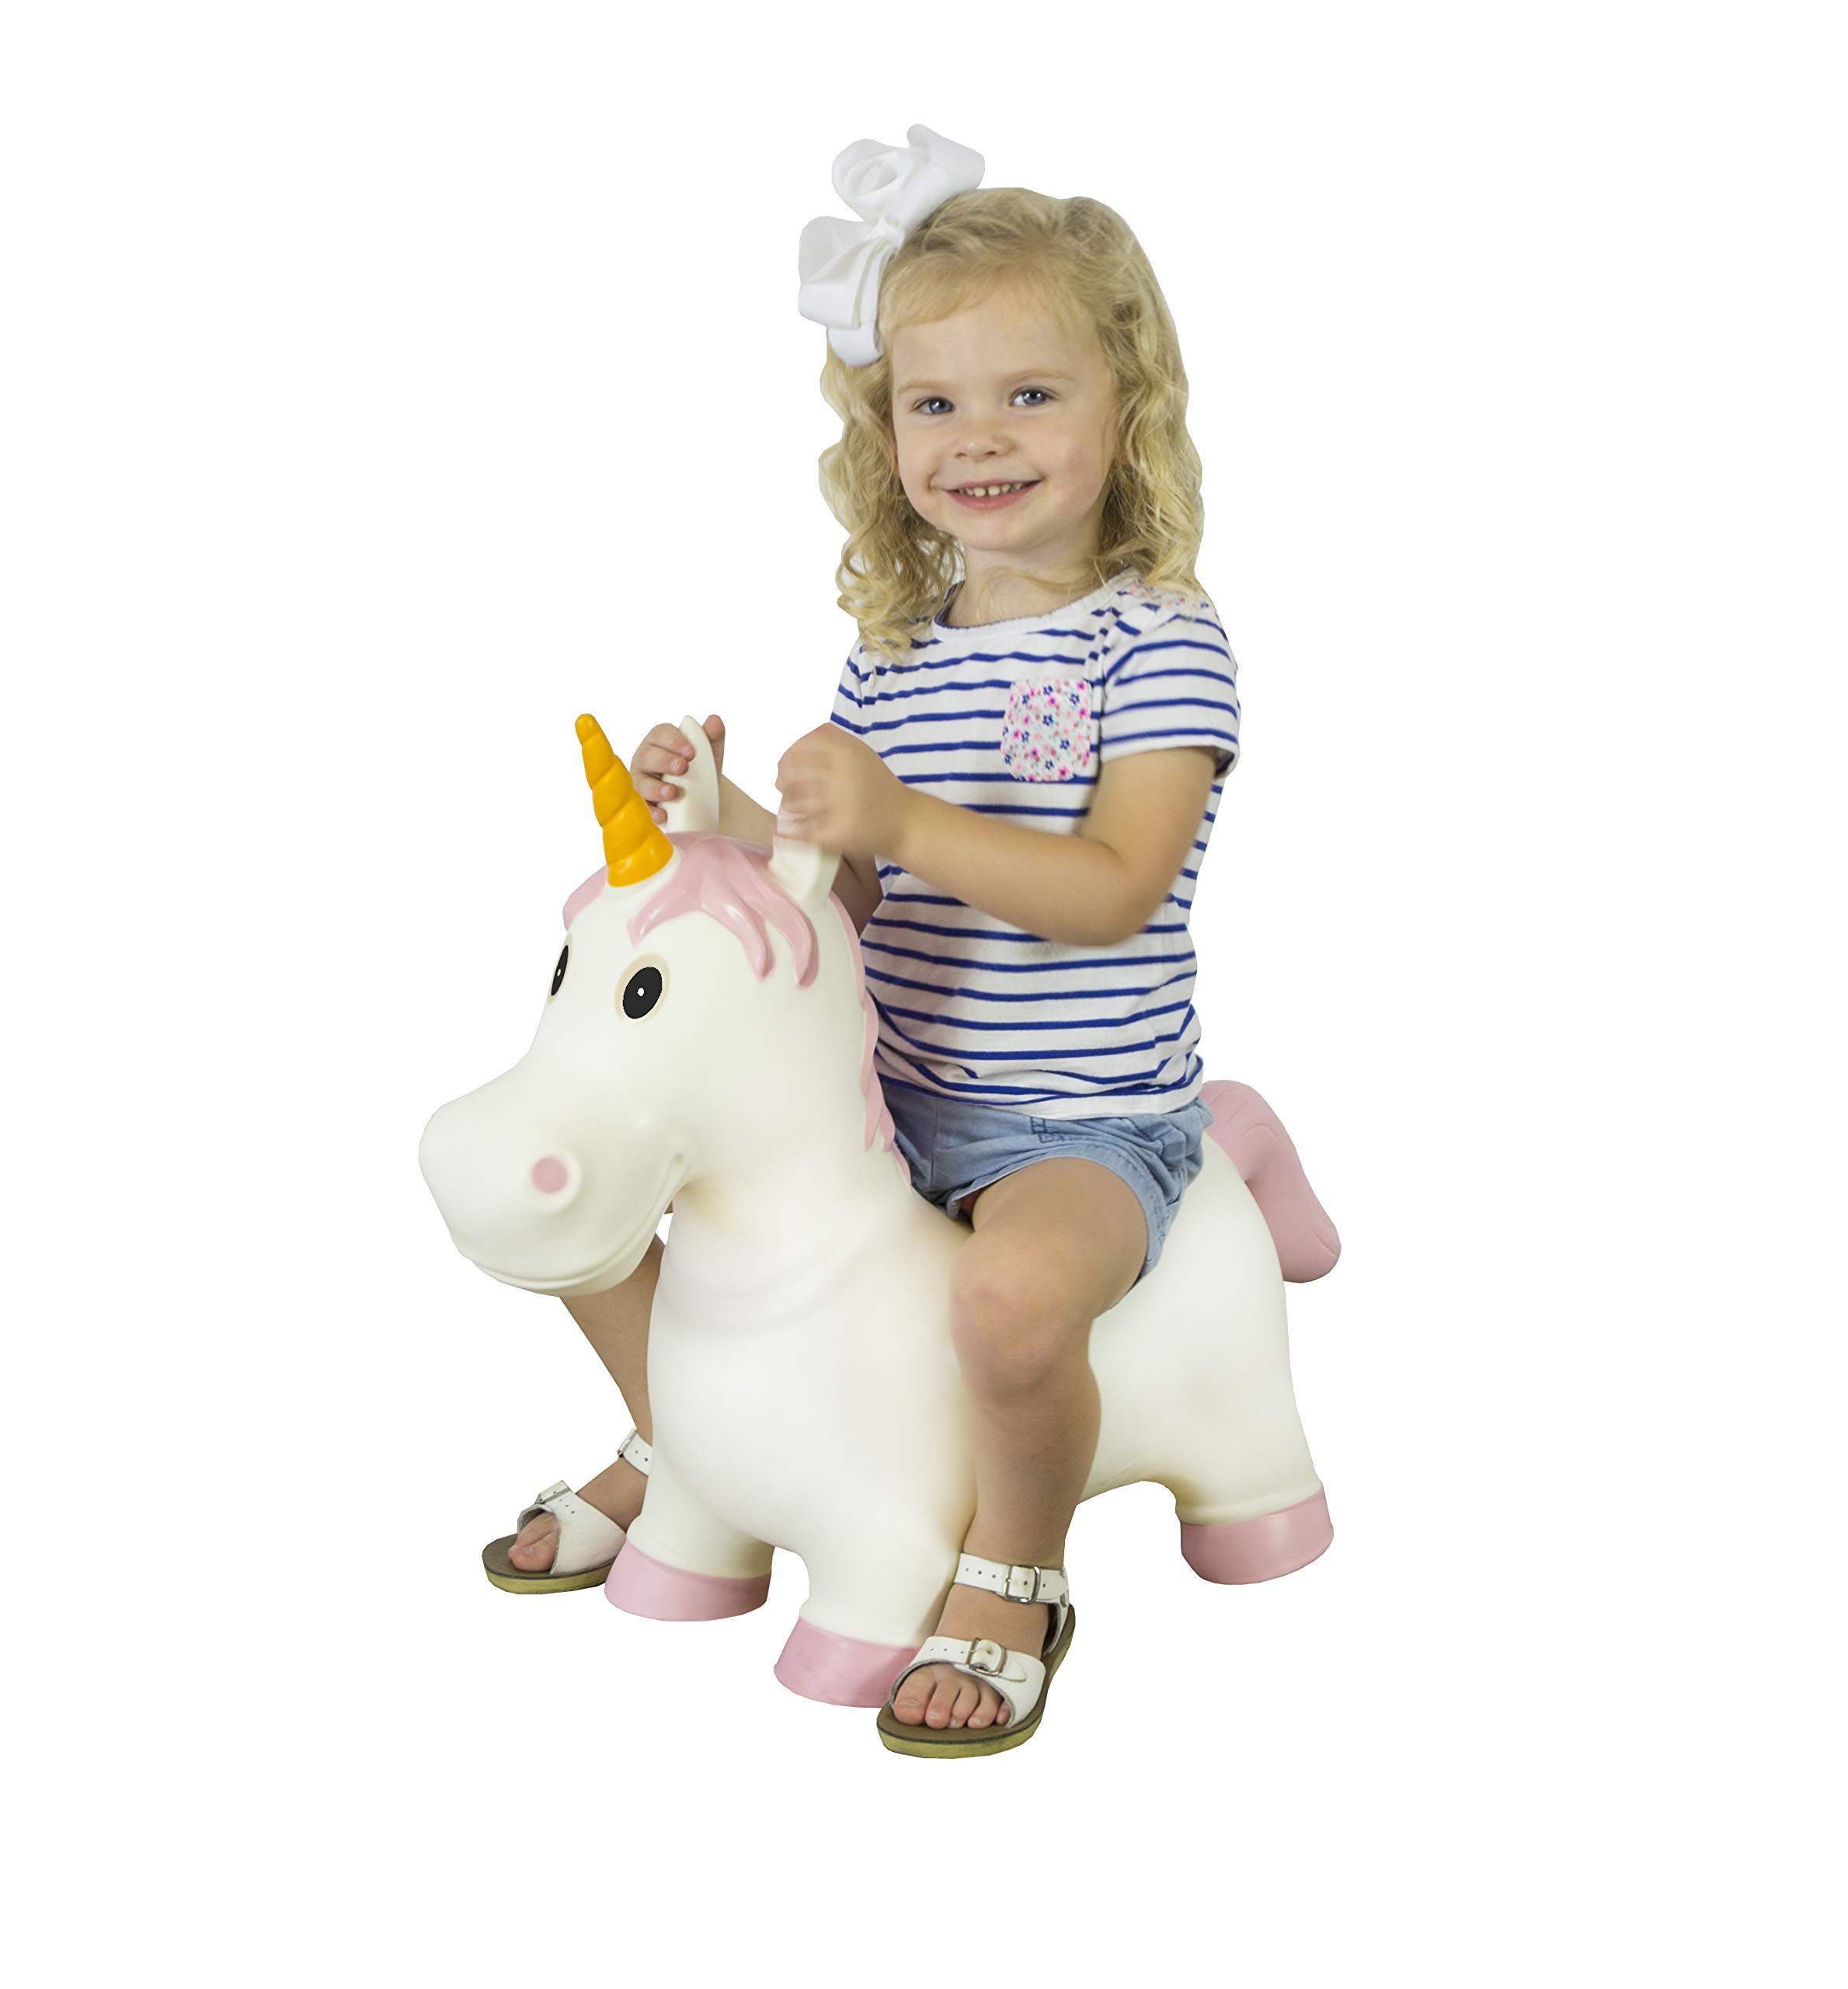 Big Country Farm Toys Unicorn - Kids Hopper Toys - Unicorn Hopper - Unicorn Toys by Big Country Toys